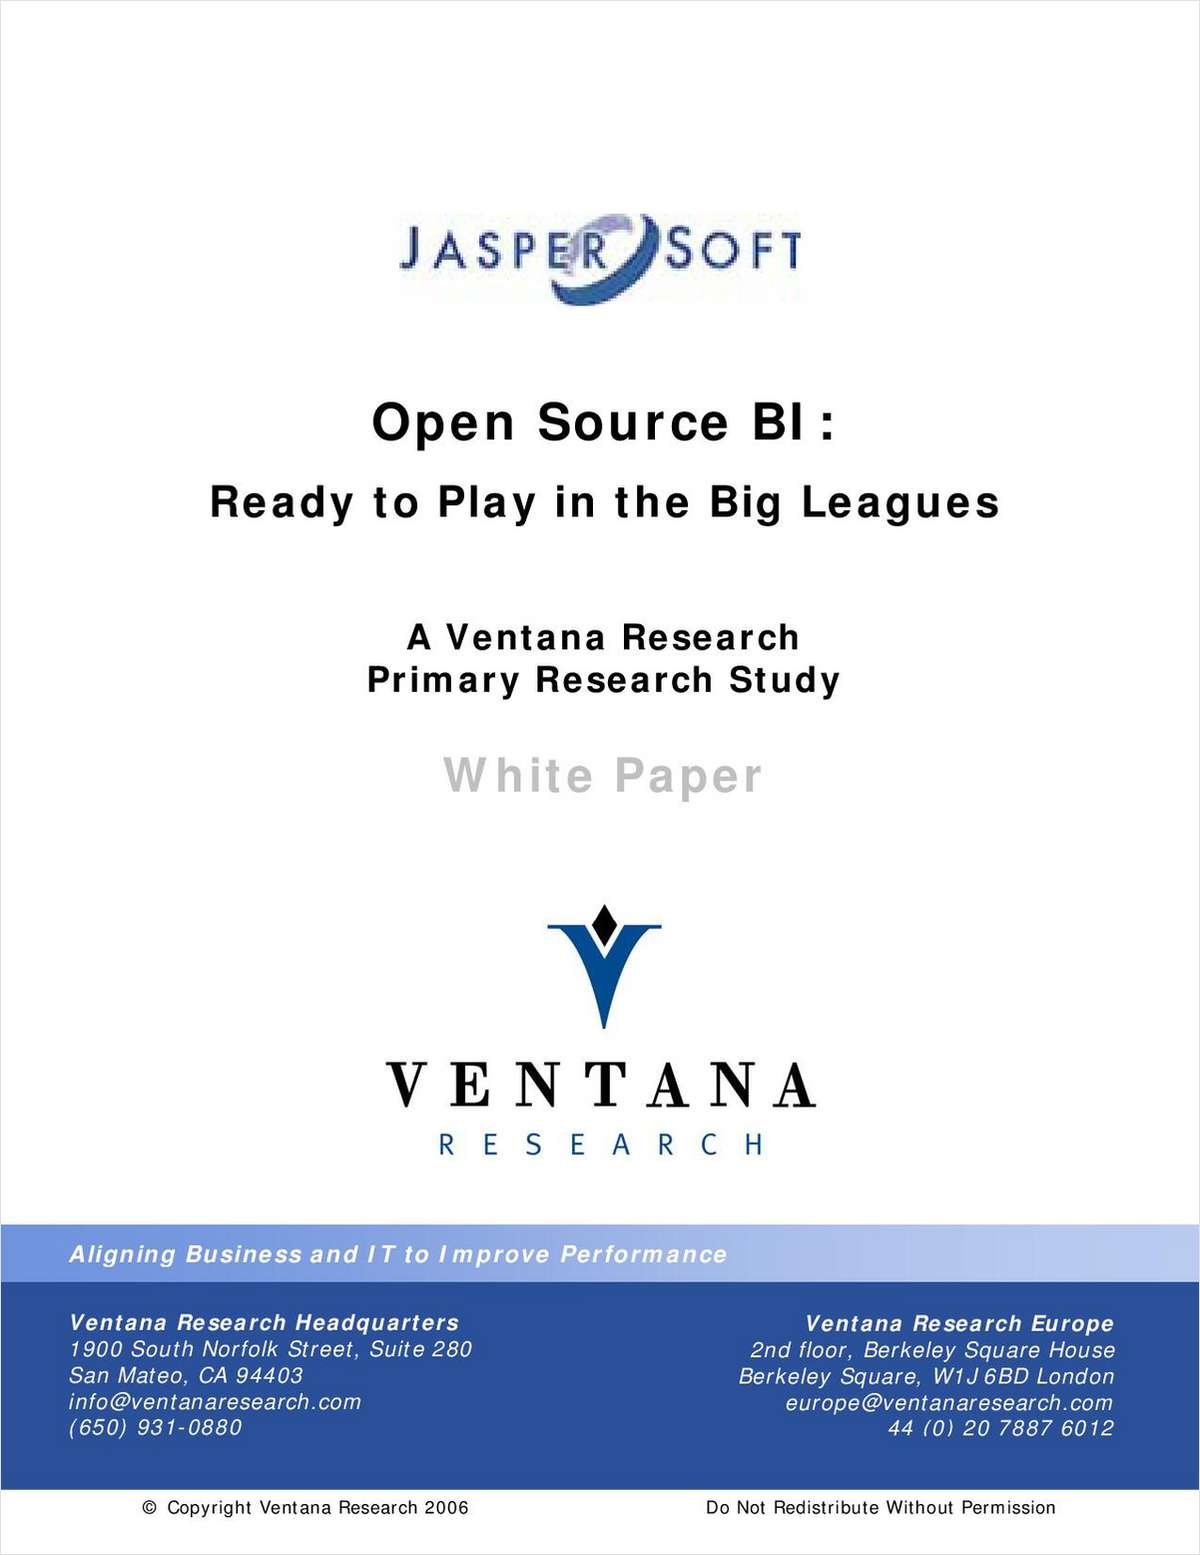 Open Source Business Intelligence: Ready to Play in the Big Leagues